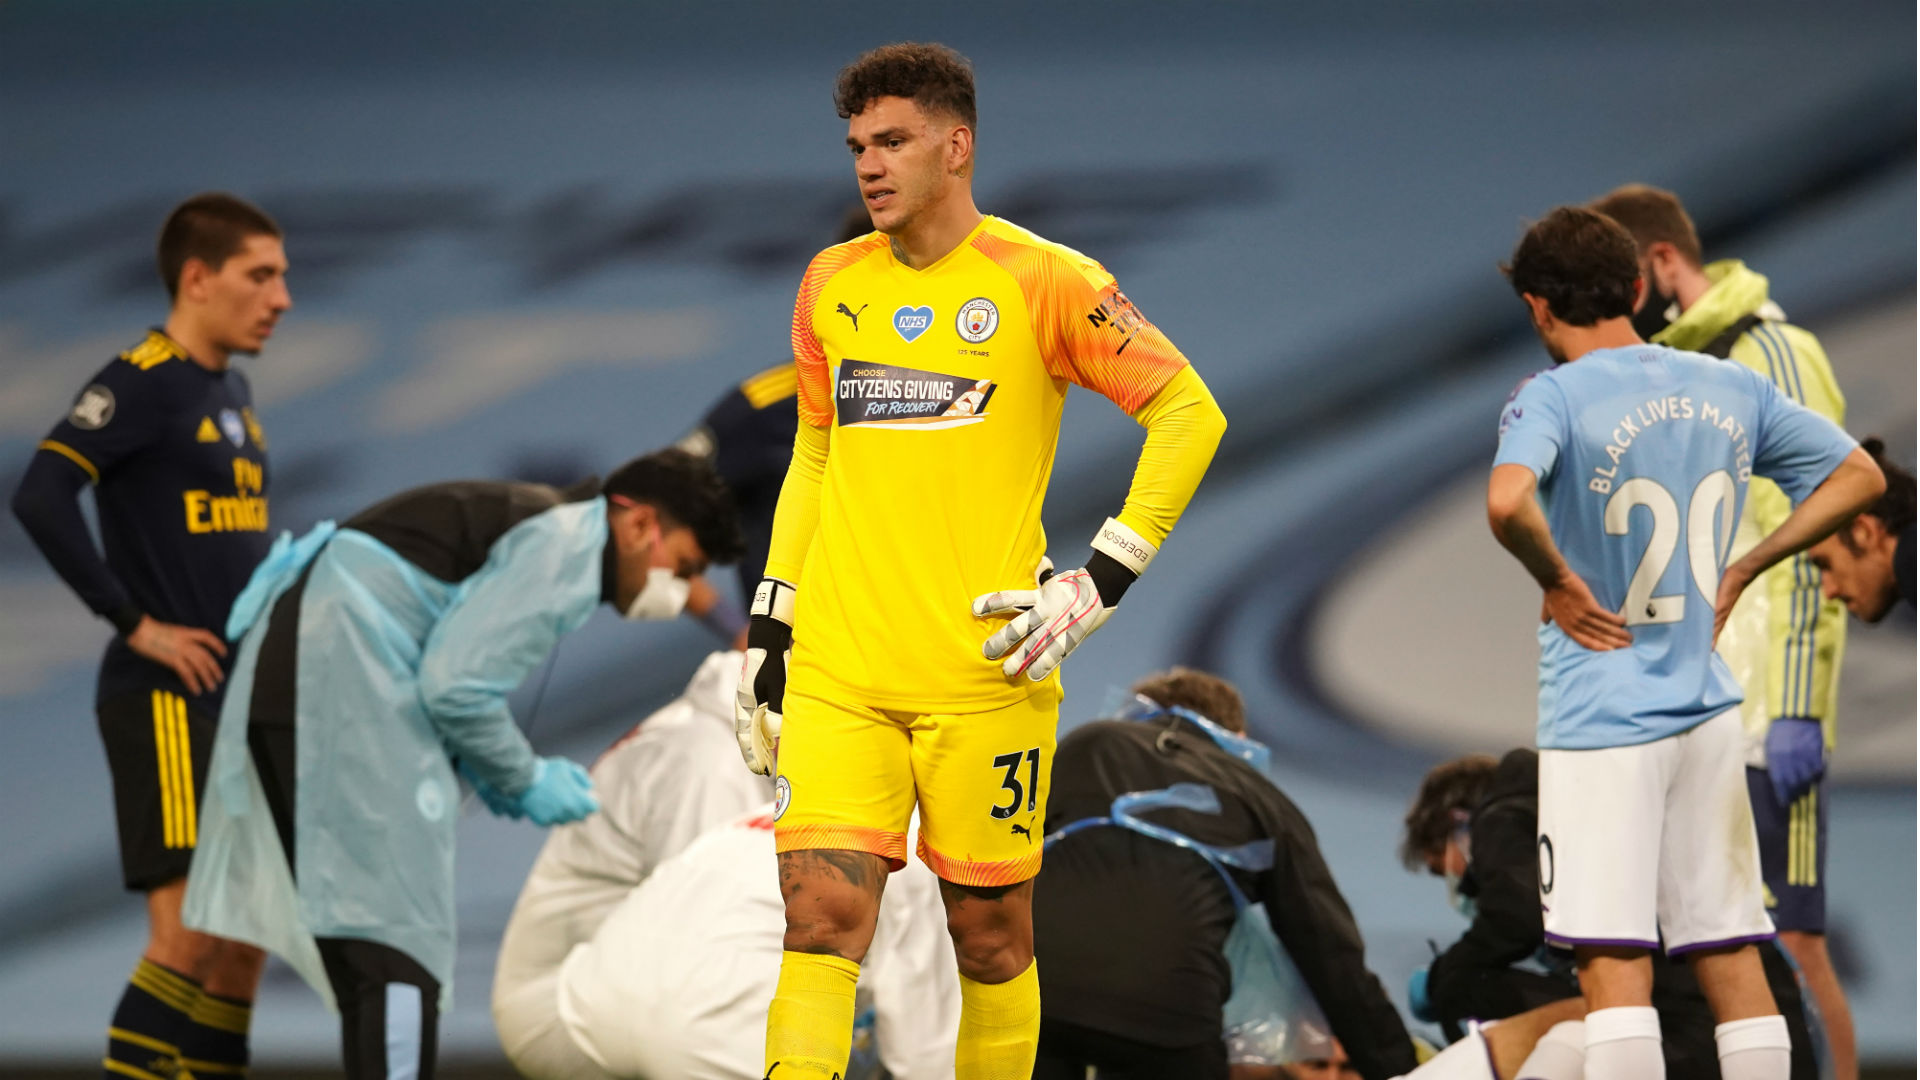 Ederson apologised to Man City team-mate Garcia after horror clash